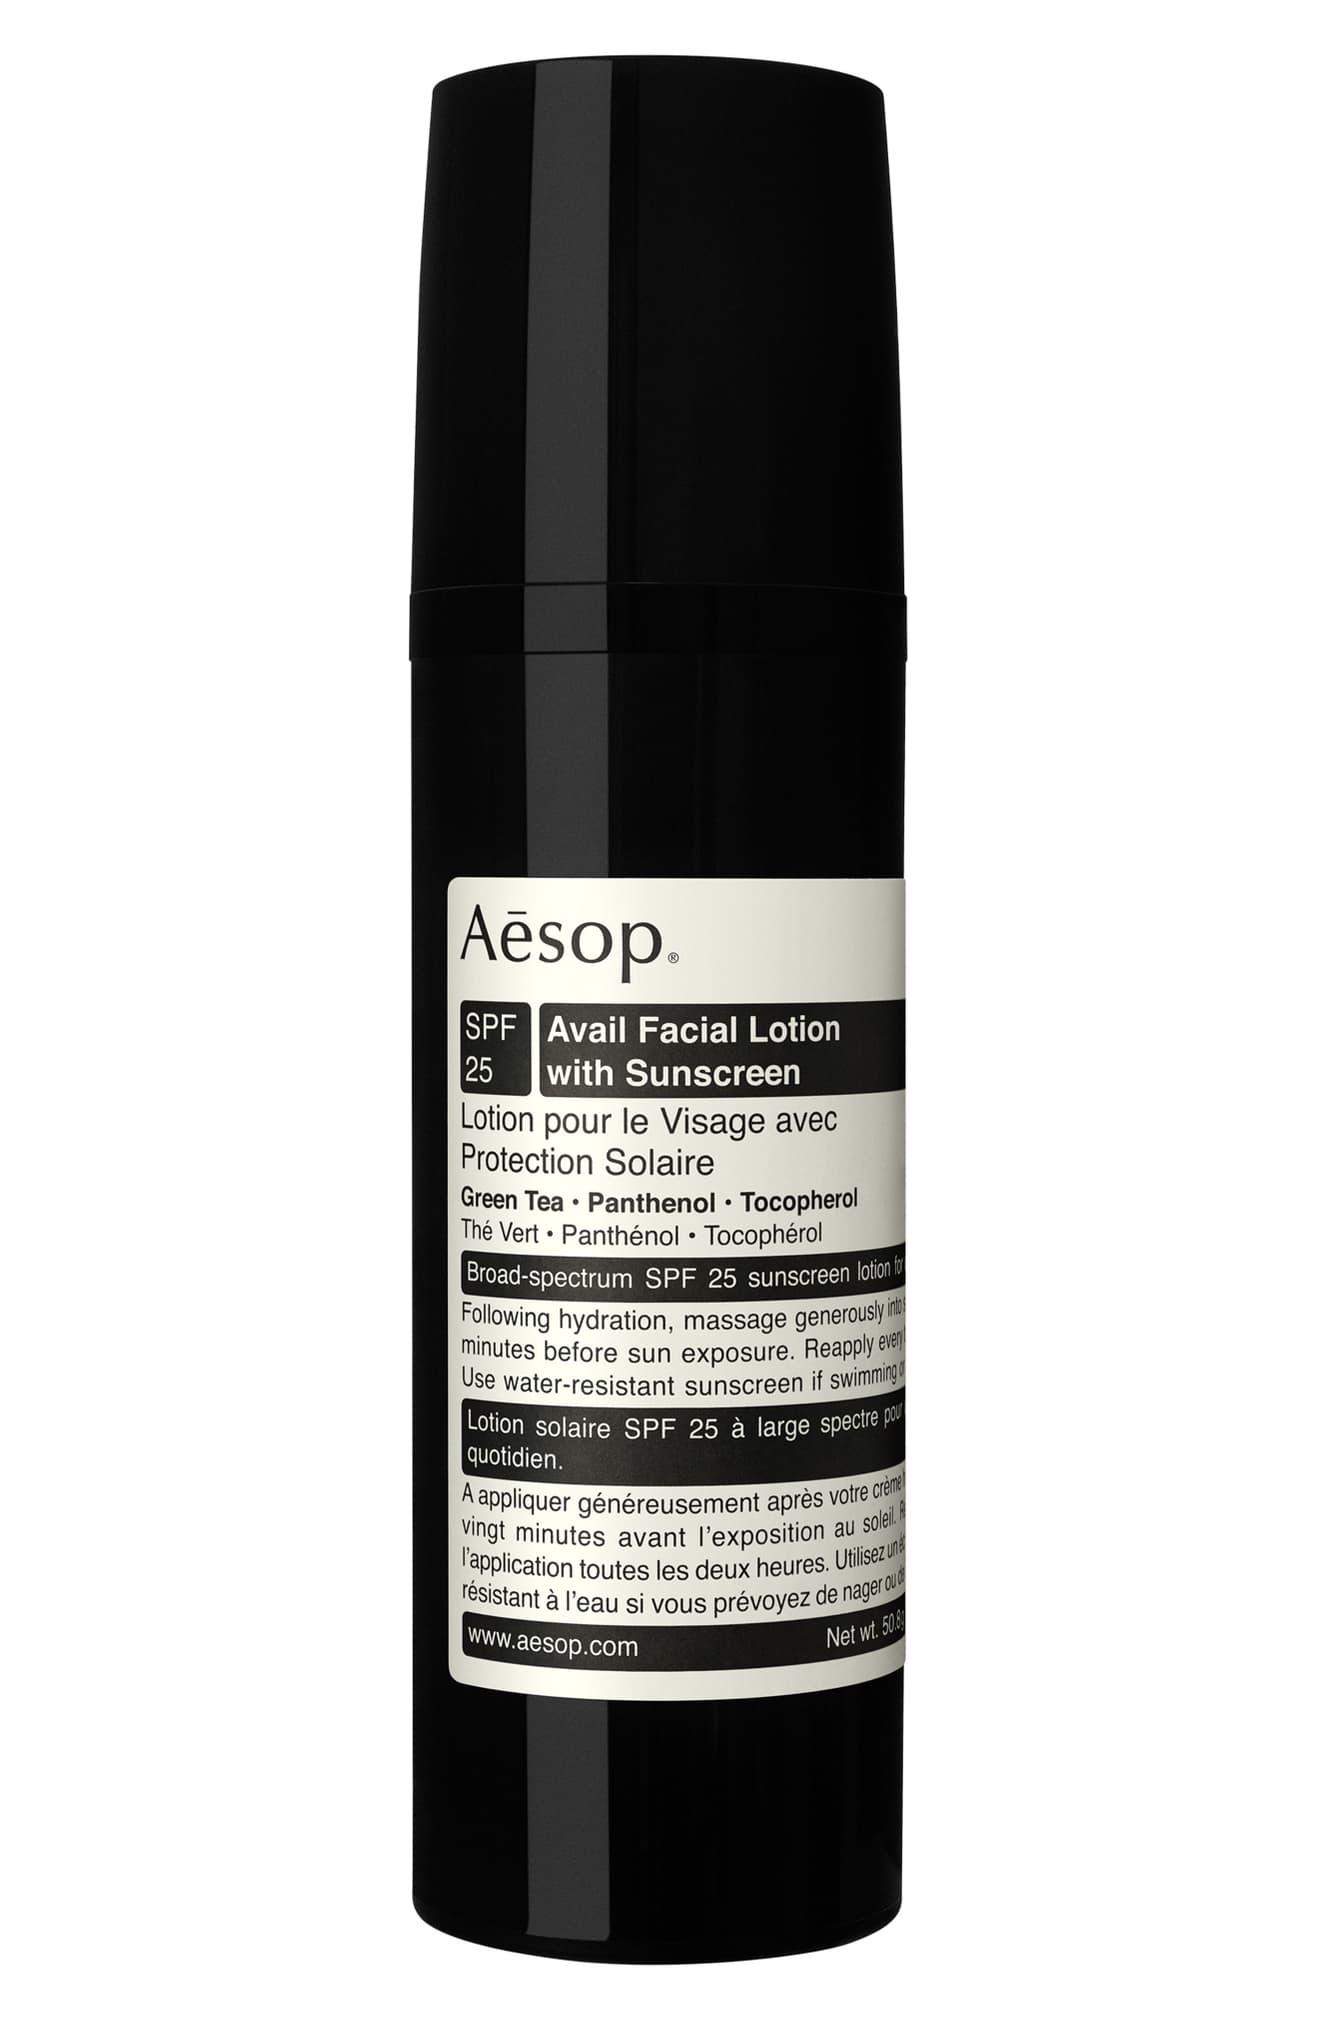 AESOP Avail Facial Lotion with Sunscreen SPF 25